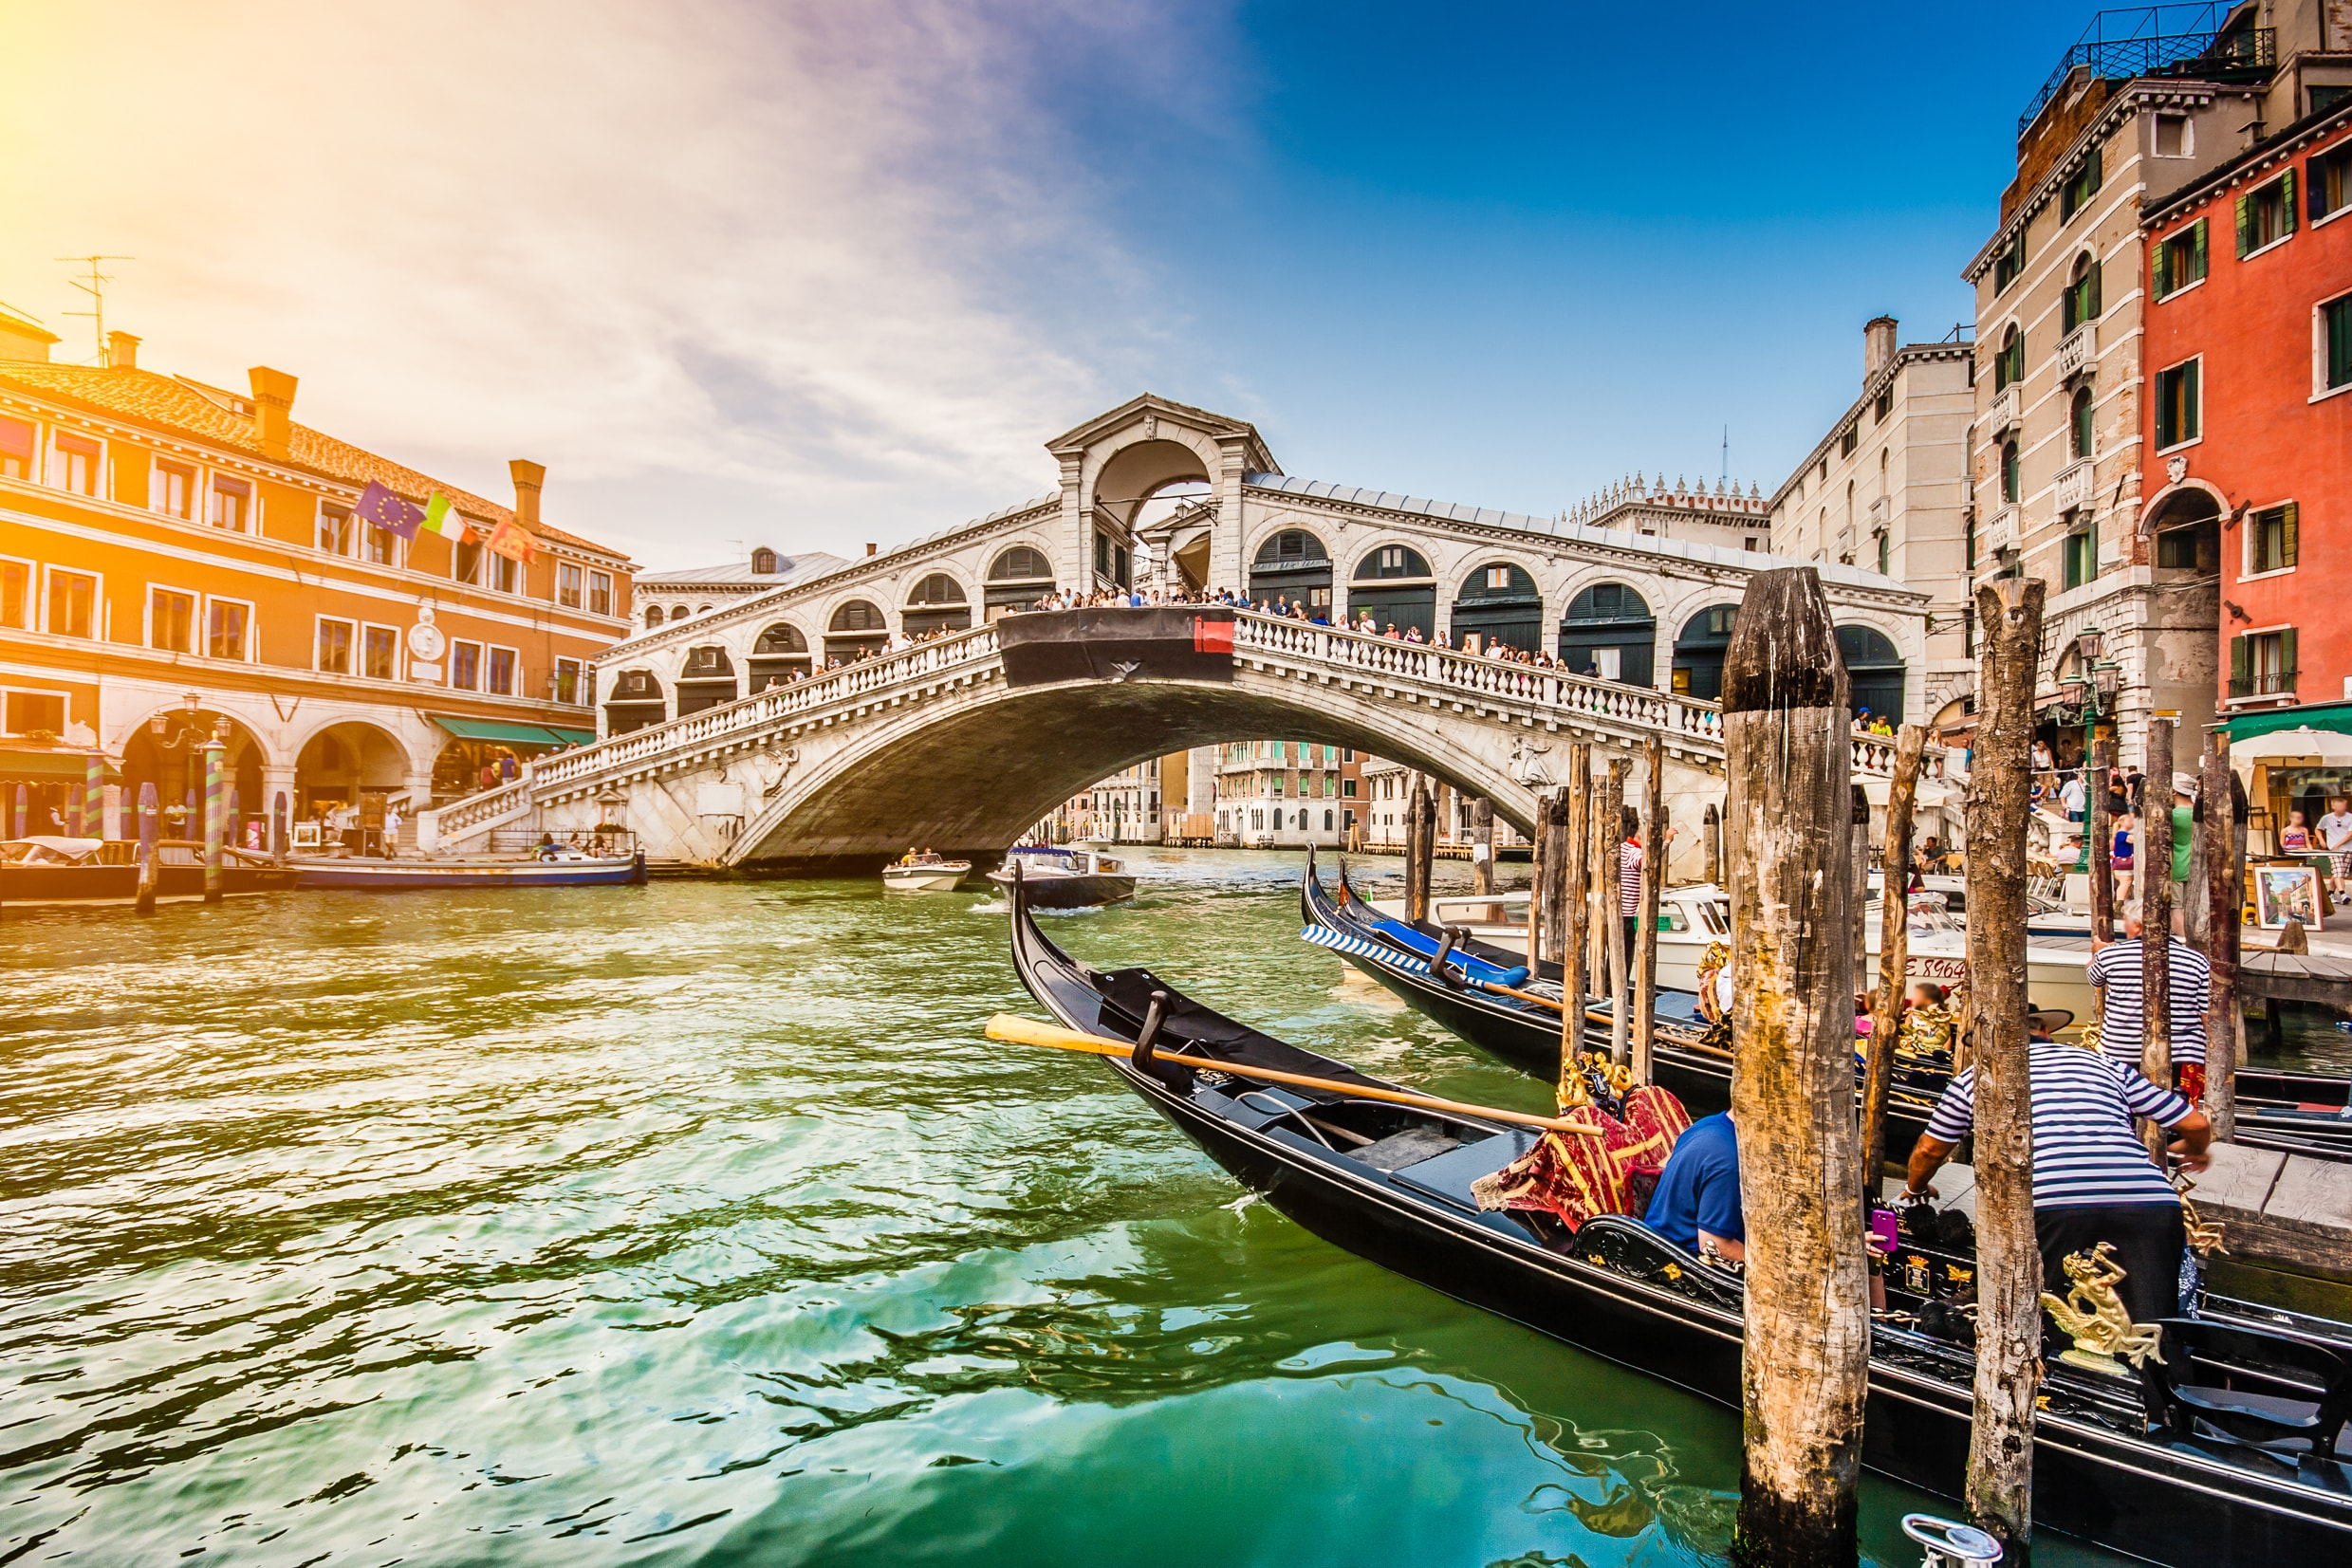 Travel the canal of Venice